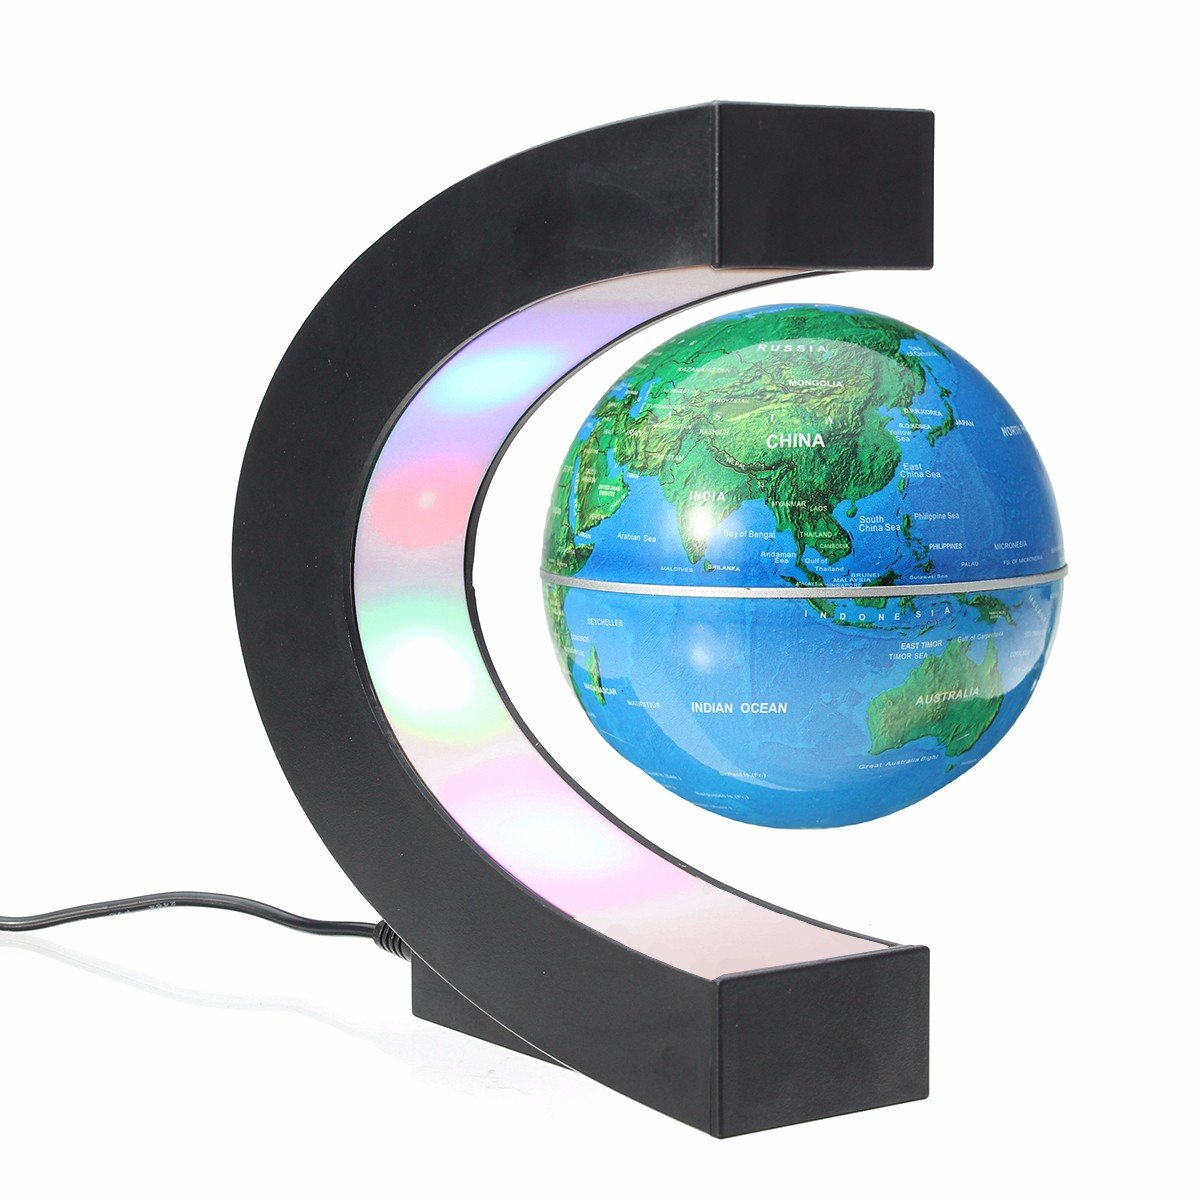 Meco 3 c shape magnetic floating globe world map led light with meco 3 c shape magnetic floating globe world map led light with touch gumiabroncs Image collections